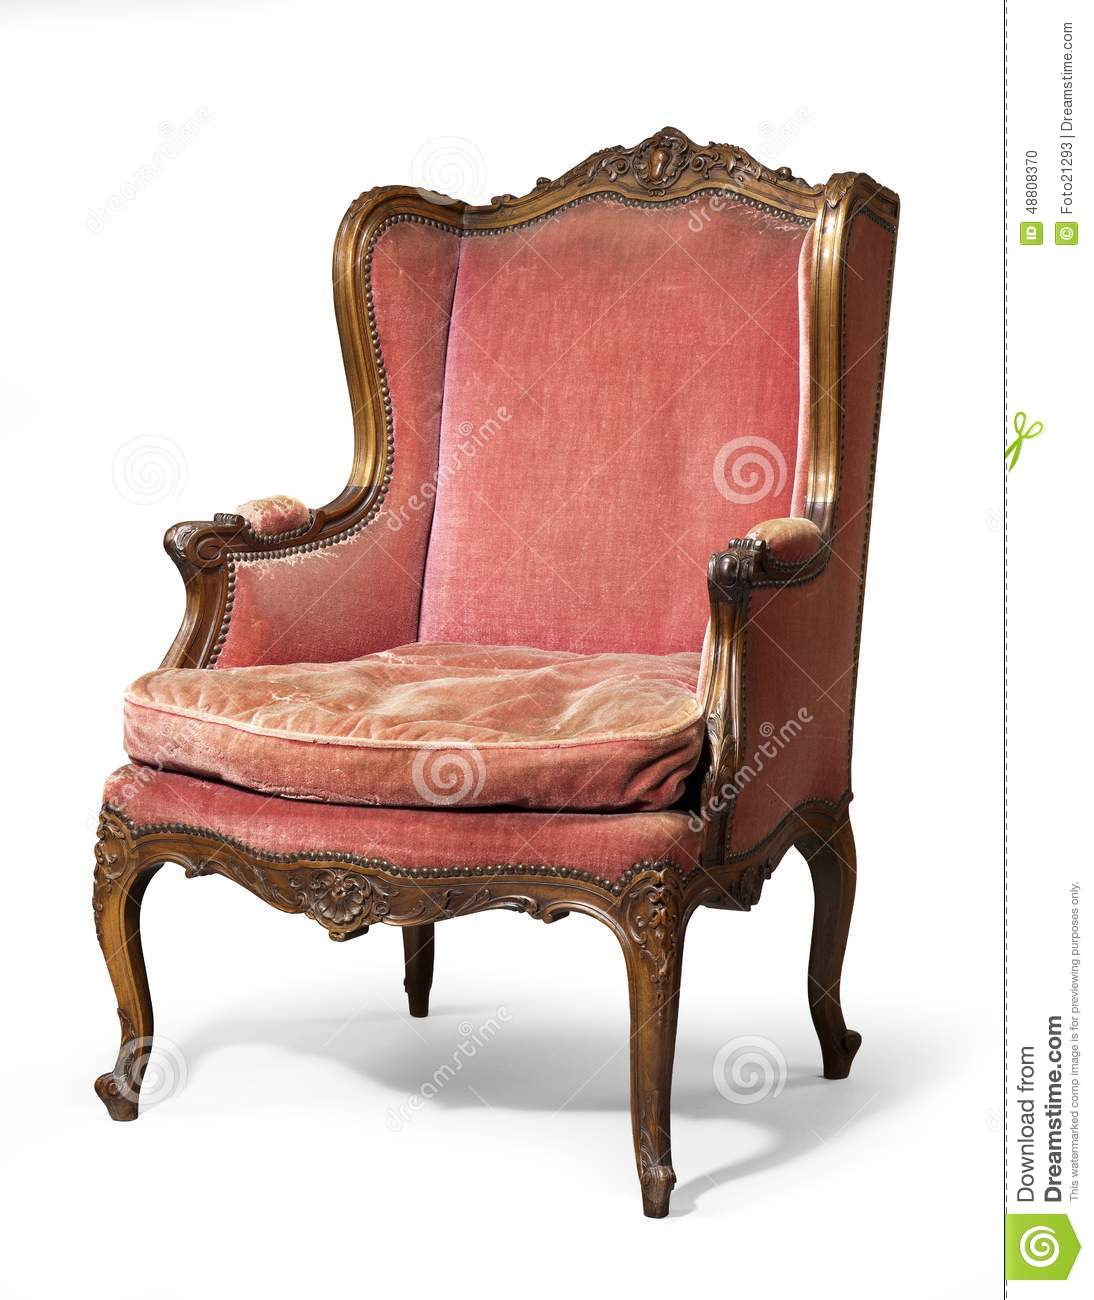 Antique upholstered chair styles - Antique Upholstered Wing Chair